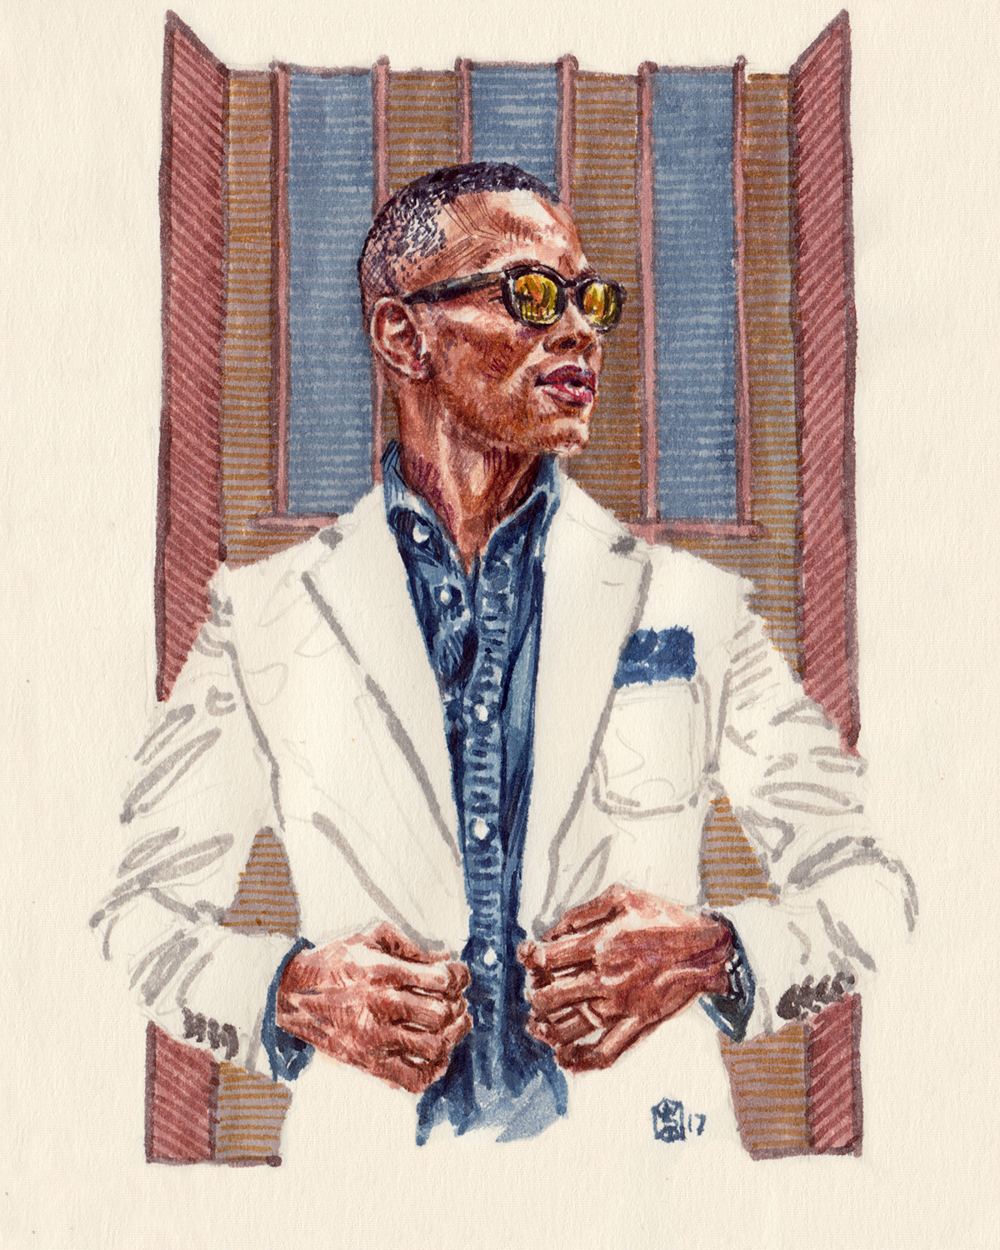 Fashion Illustration Portrait of Sabir Peele, the Men's Style Pro